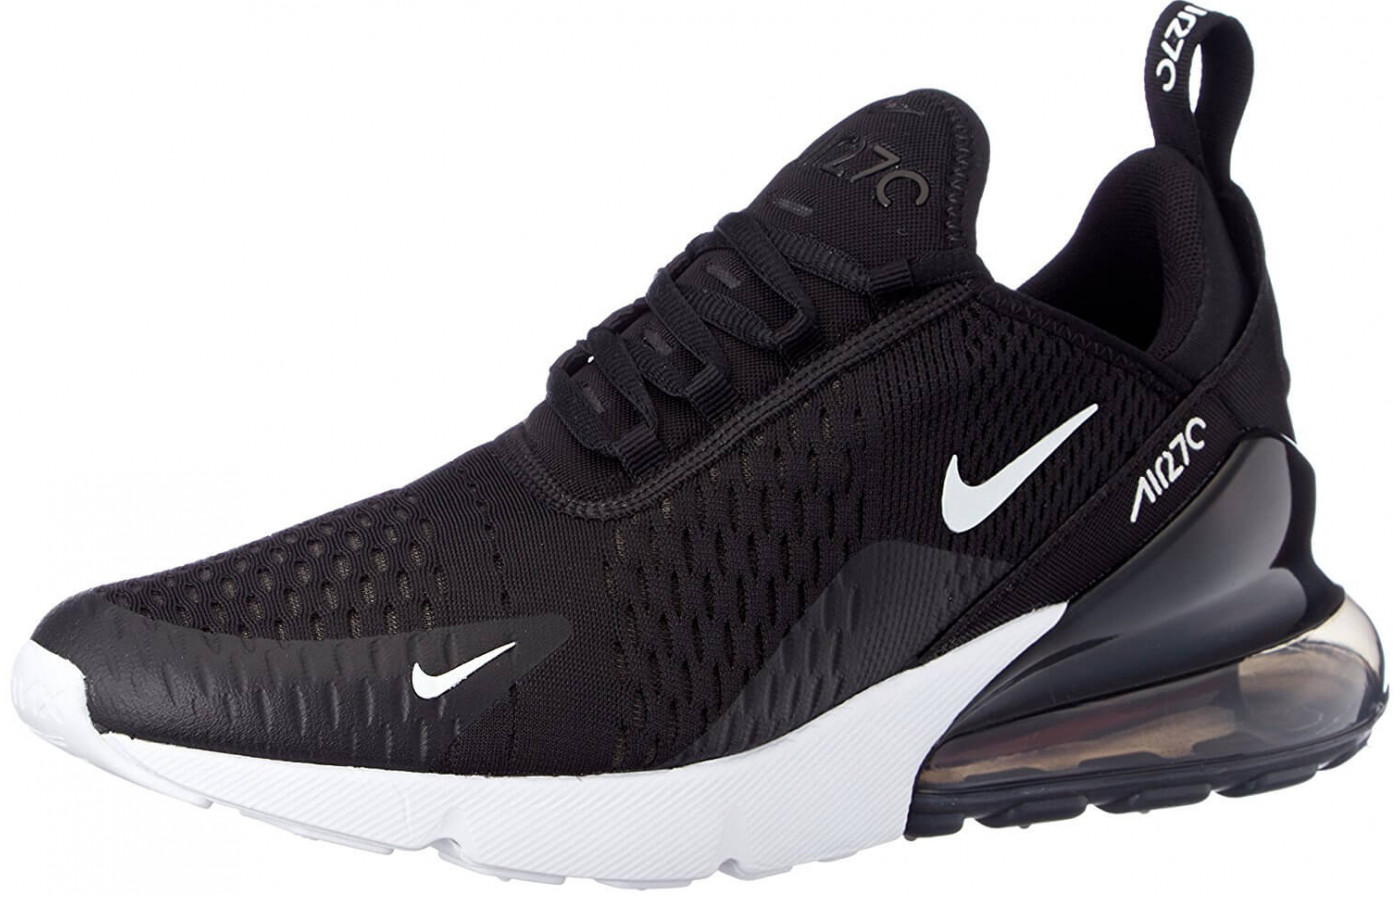 0e28b7582f Nike Air Max 270 Reviewed - To Buy or Not in June 2019?